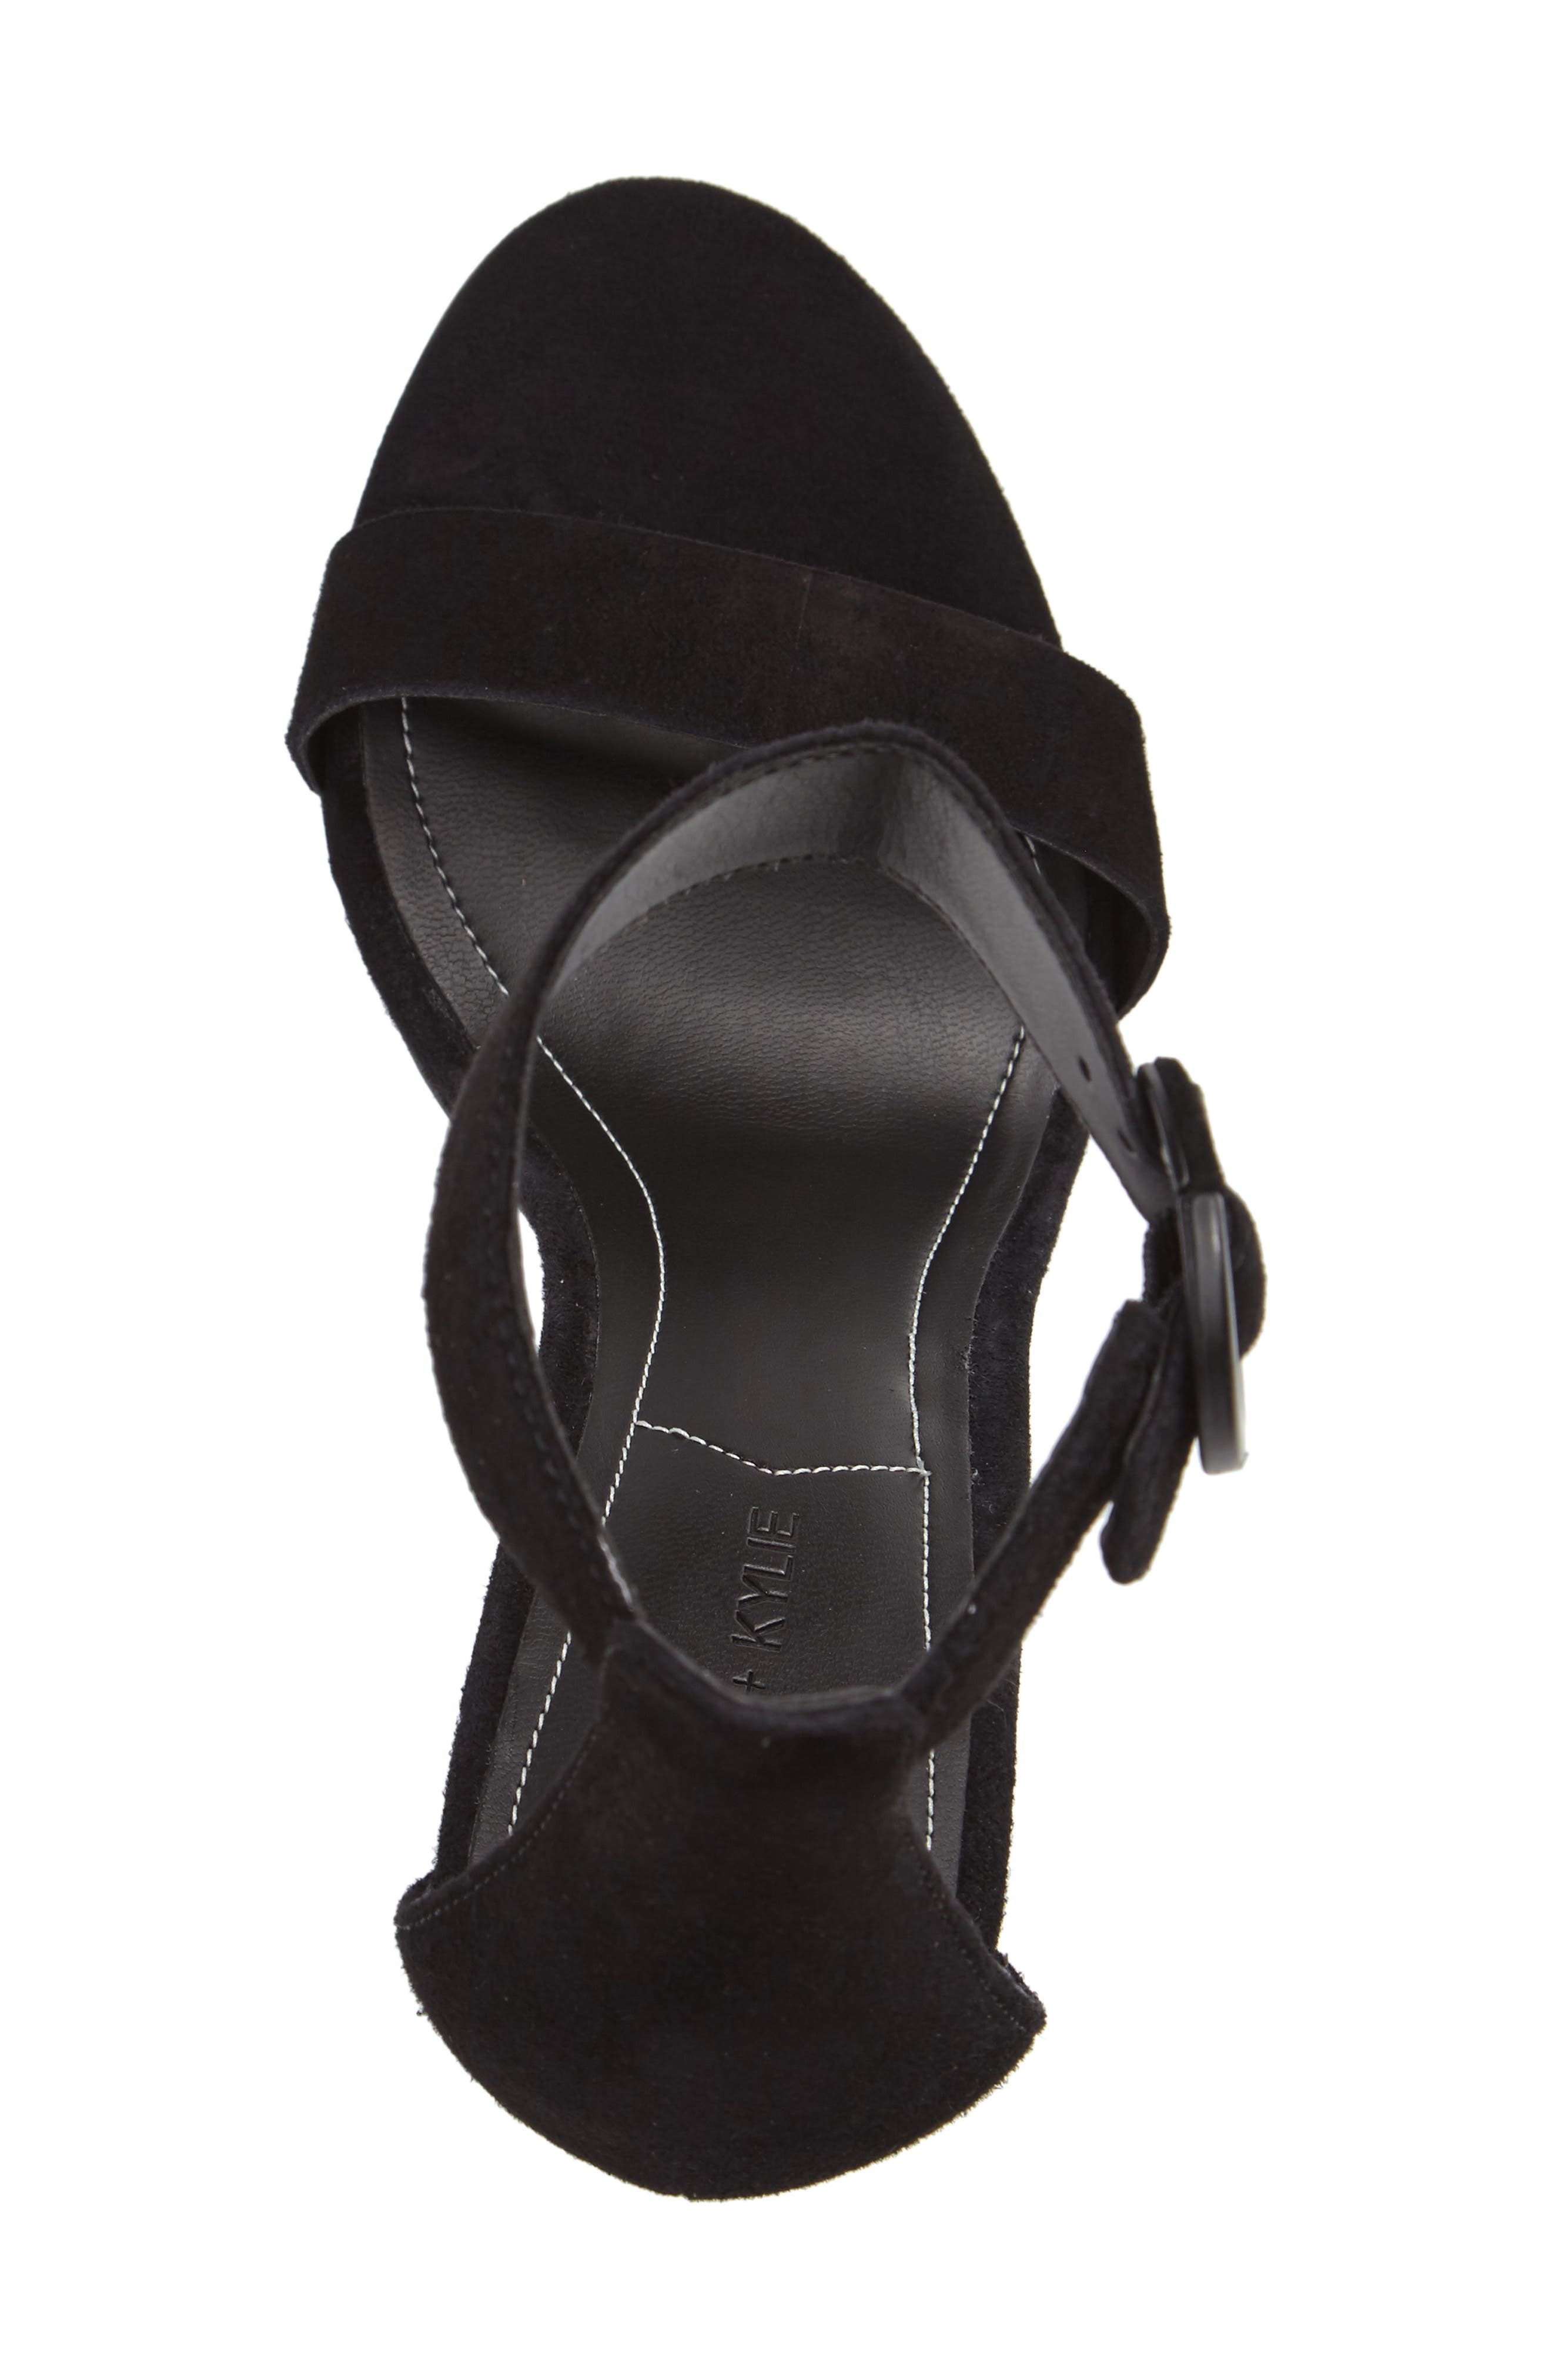 Giselle Strappy Sandal,                             Alternate thumbnail 3, color,                             001